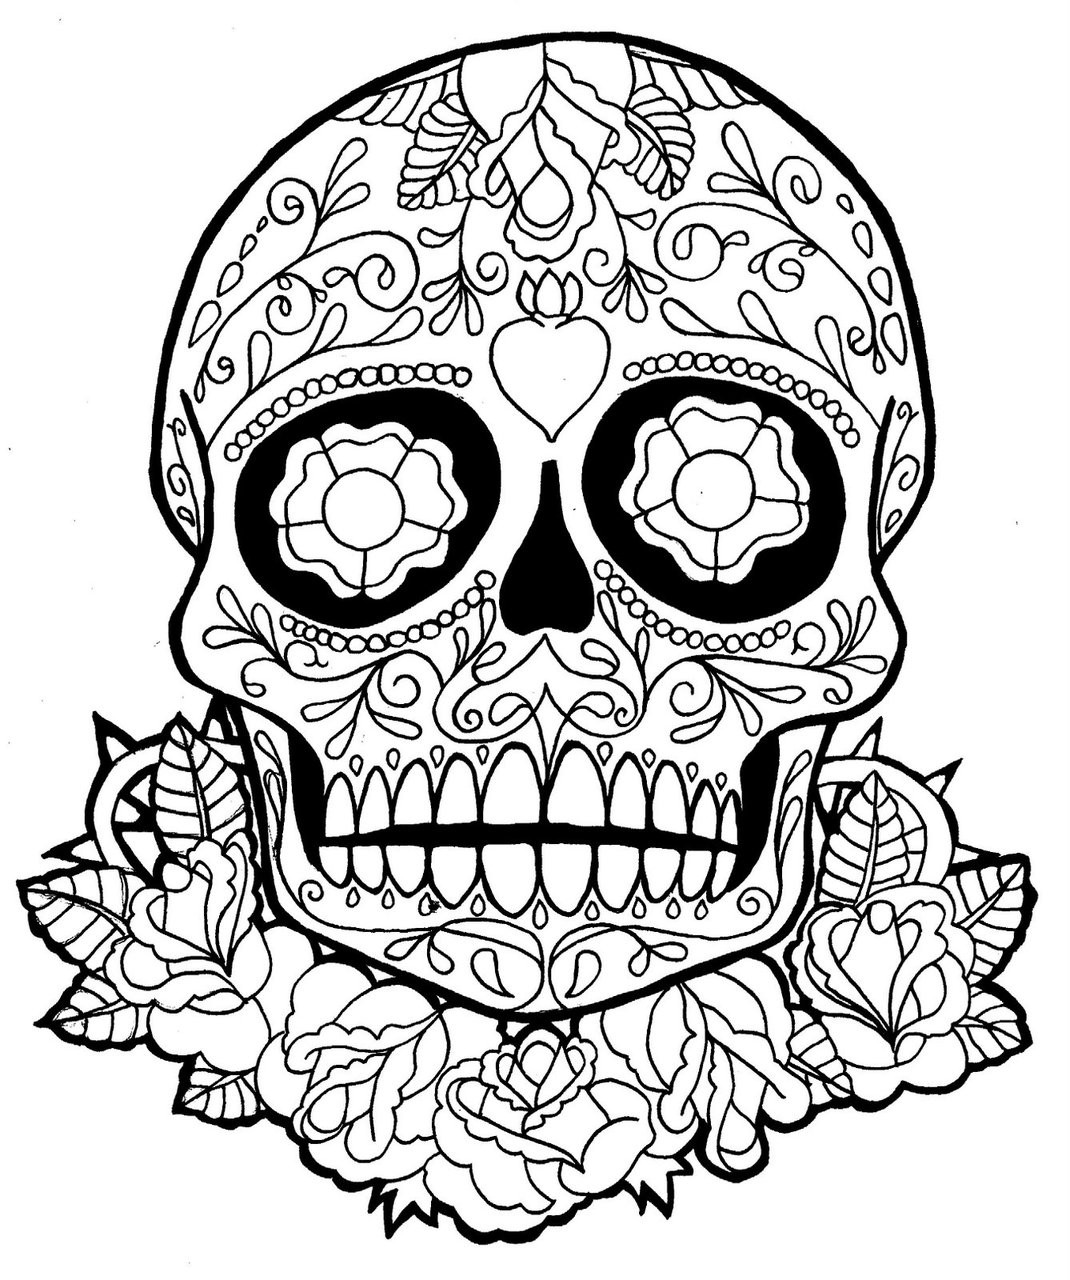 1070x1280 Sugar Skulls Coloring Pages Printable Throughout Dia De Los